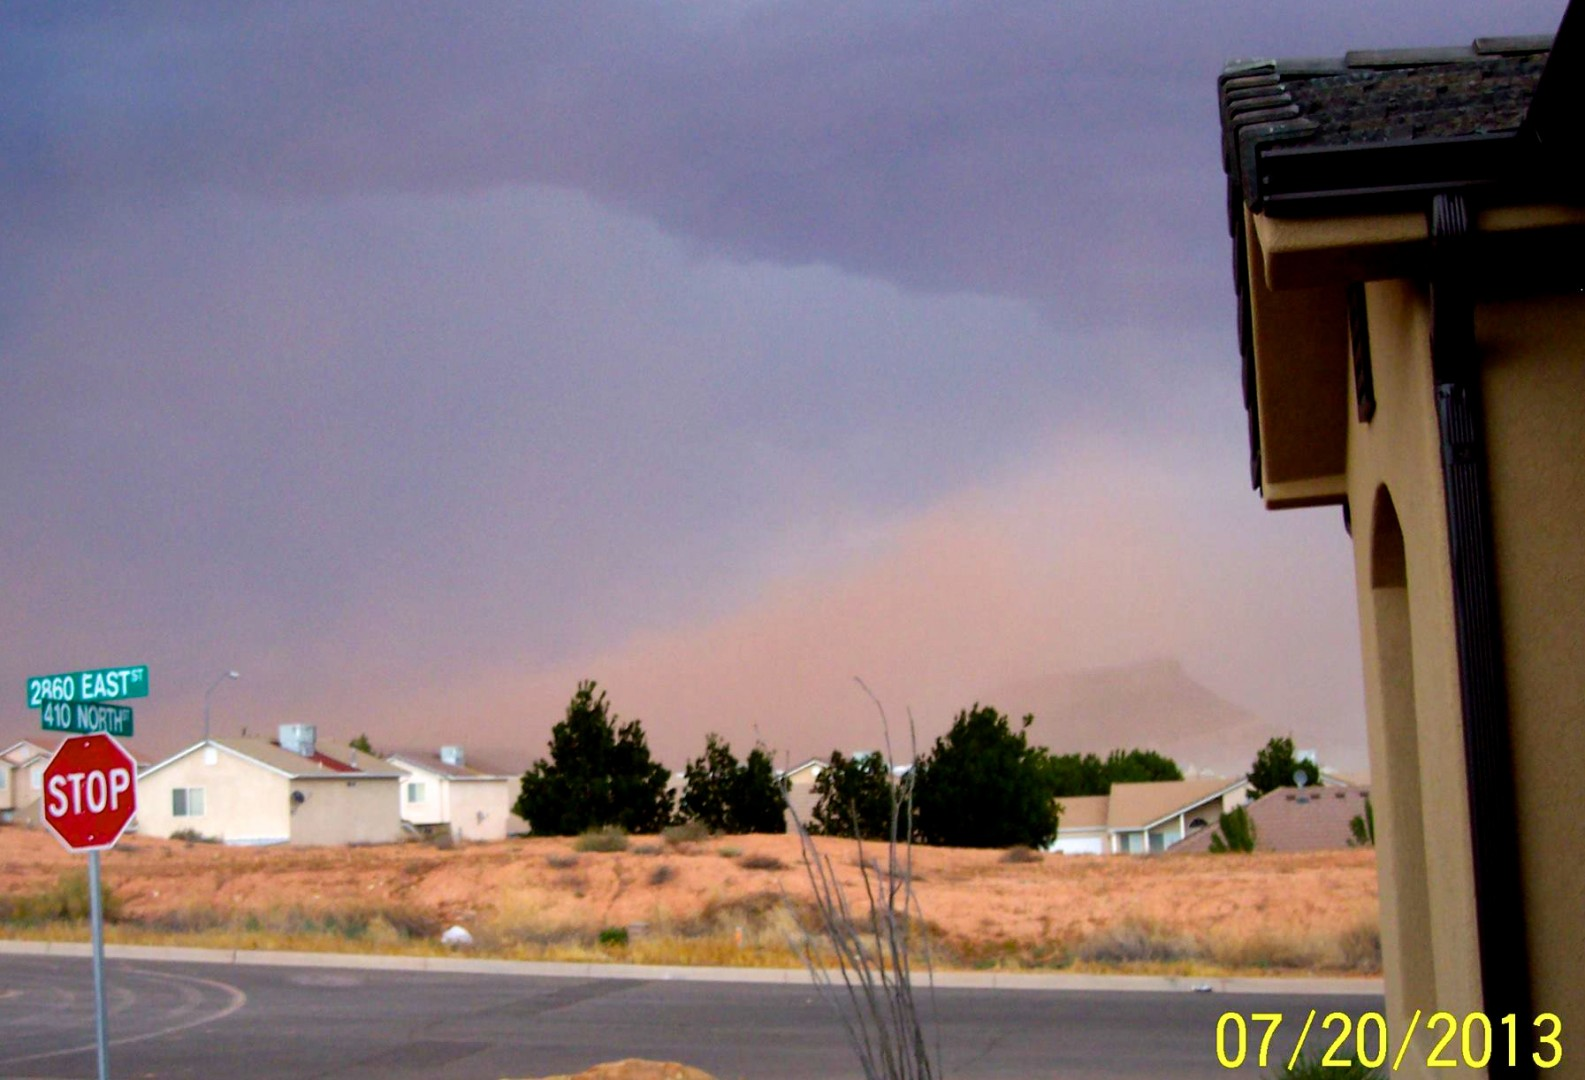 Cloud of dust seen from 410 North Street and 2860 East Street in Washington, Utah, July 20, 2013 | Photo courtesy of Rudi Verhoeven, St. George News